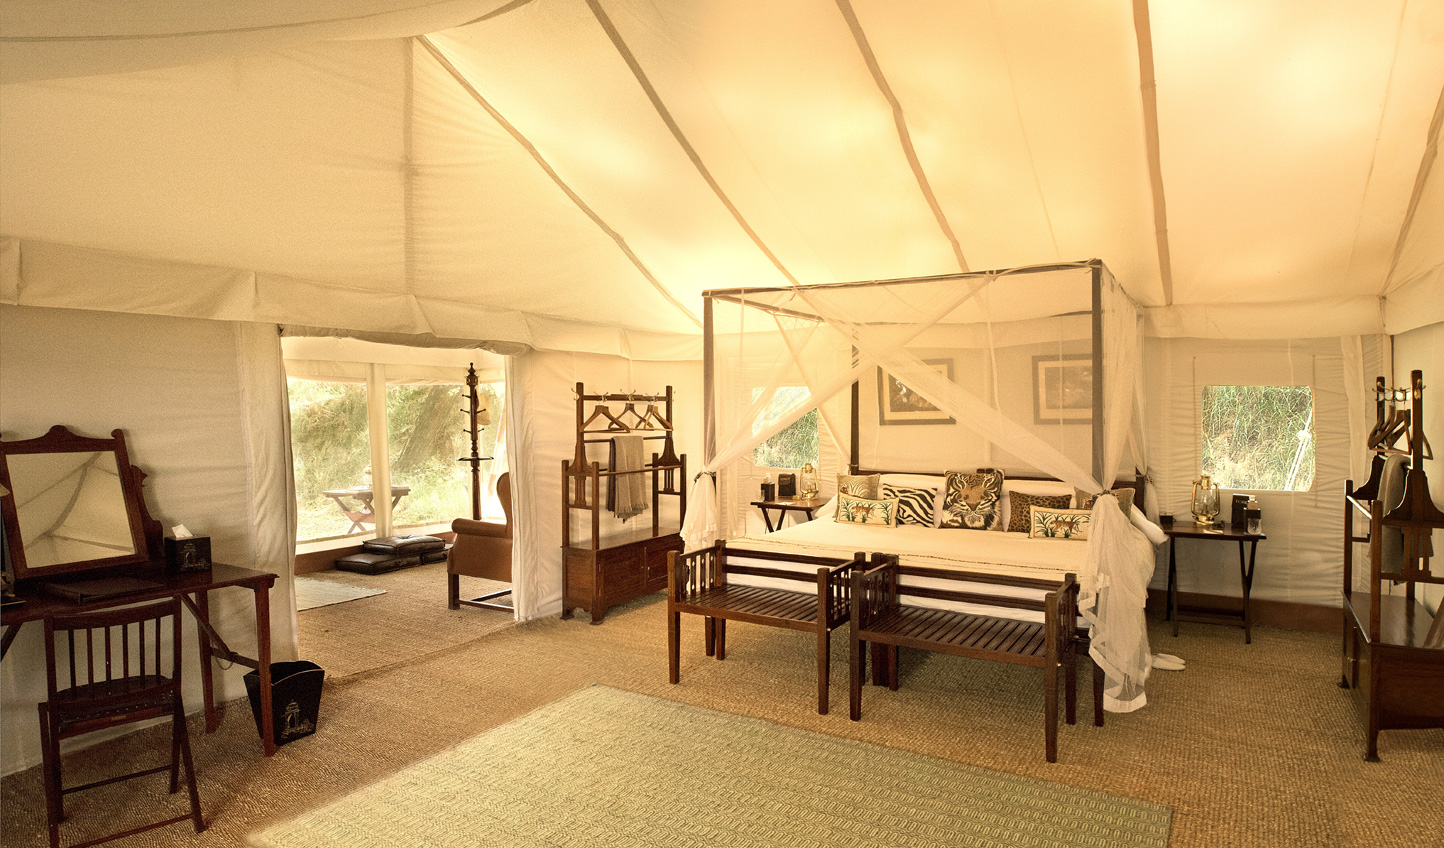 Inside your chic tent at Sher Bagh